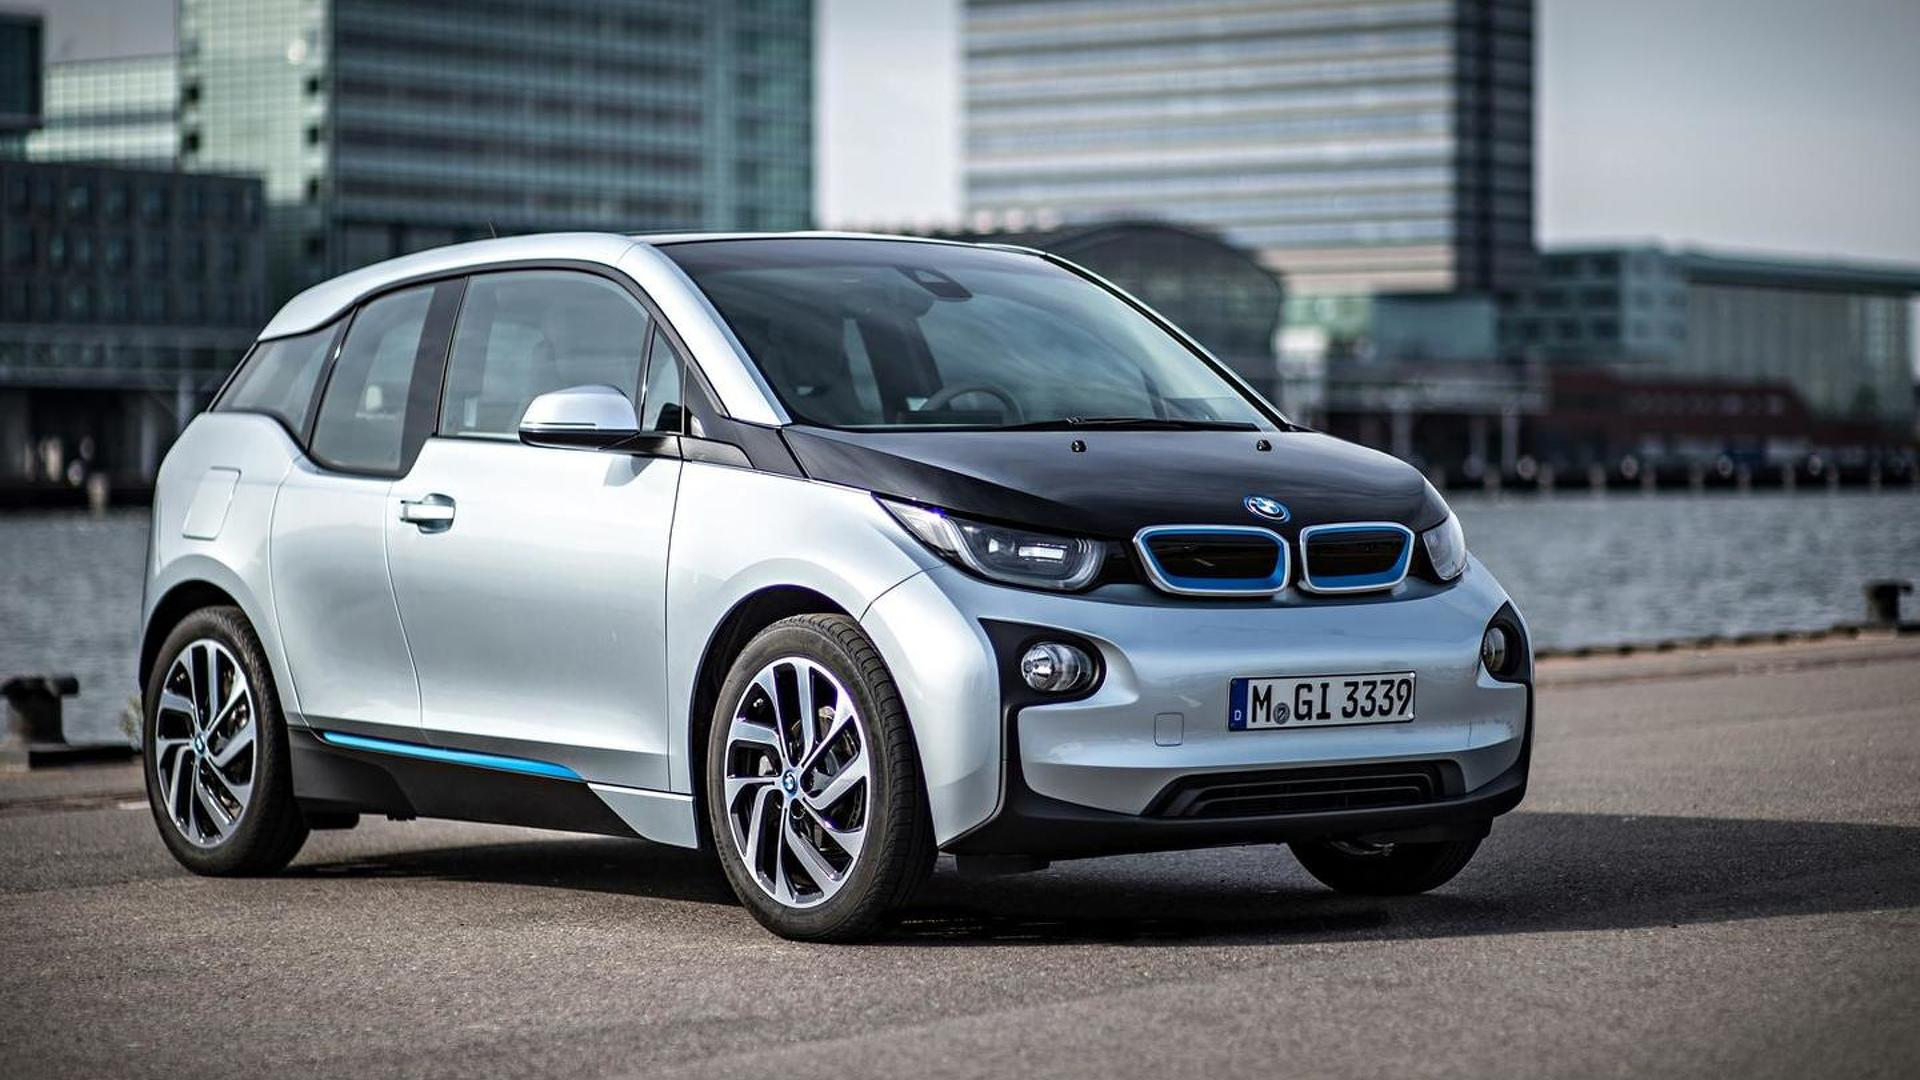 Apple car to be based on the BMW i3?